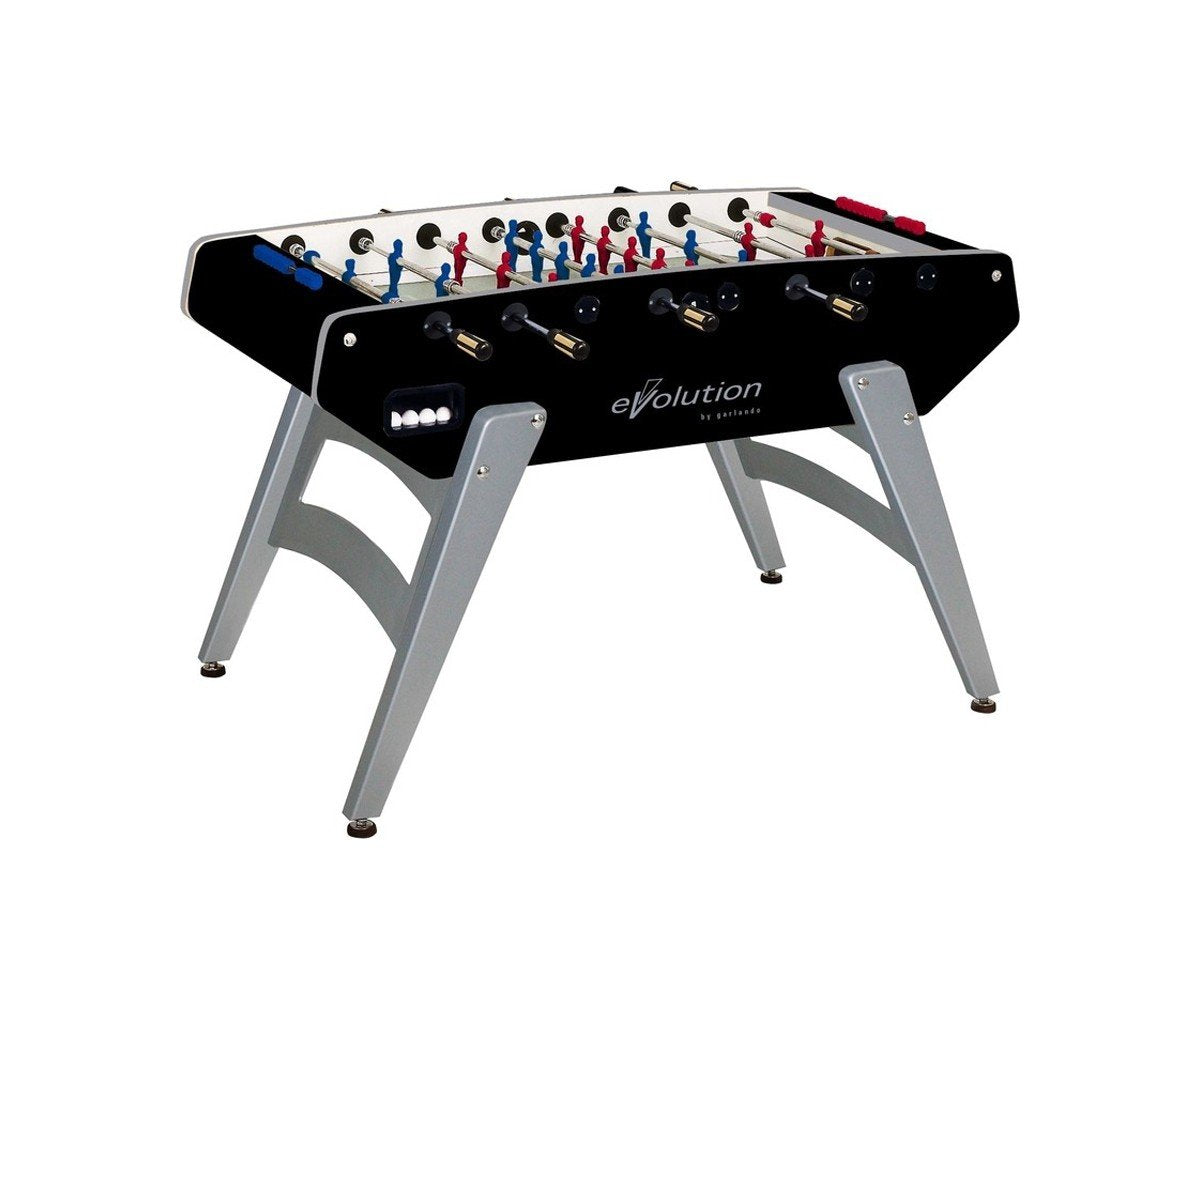 Garlando G-5000 Evolution Foosball Table - Gaming Blaze